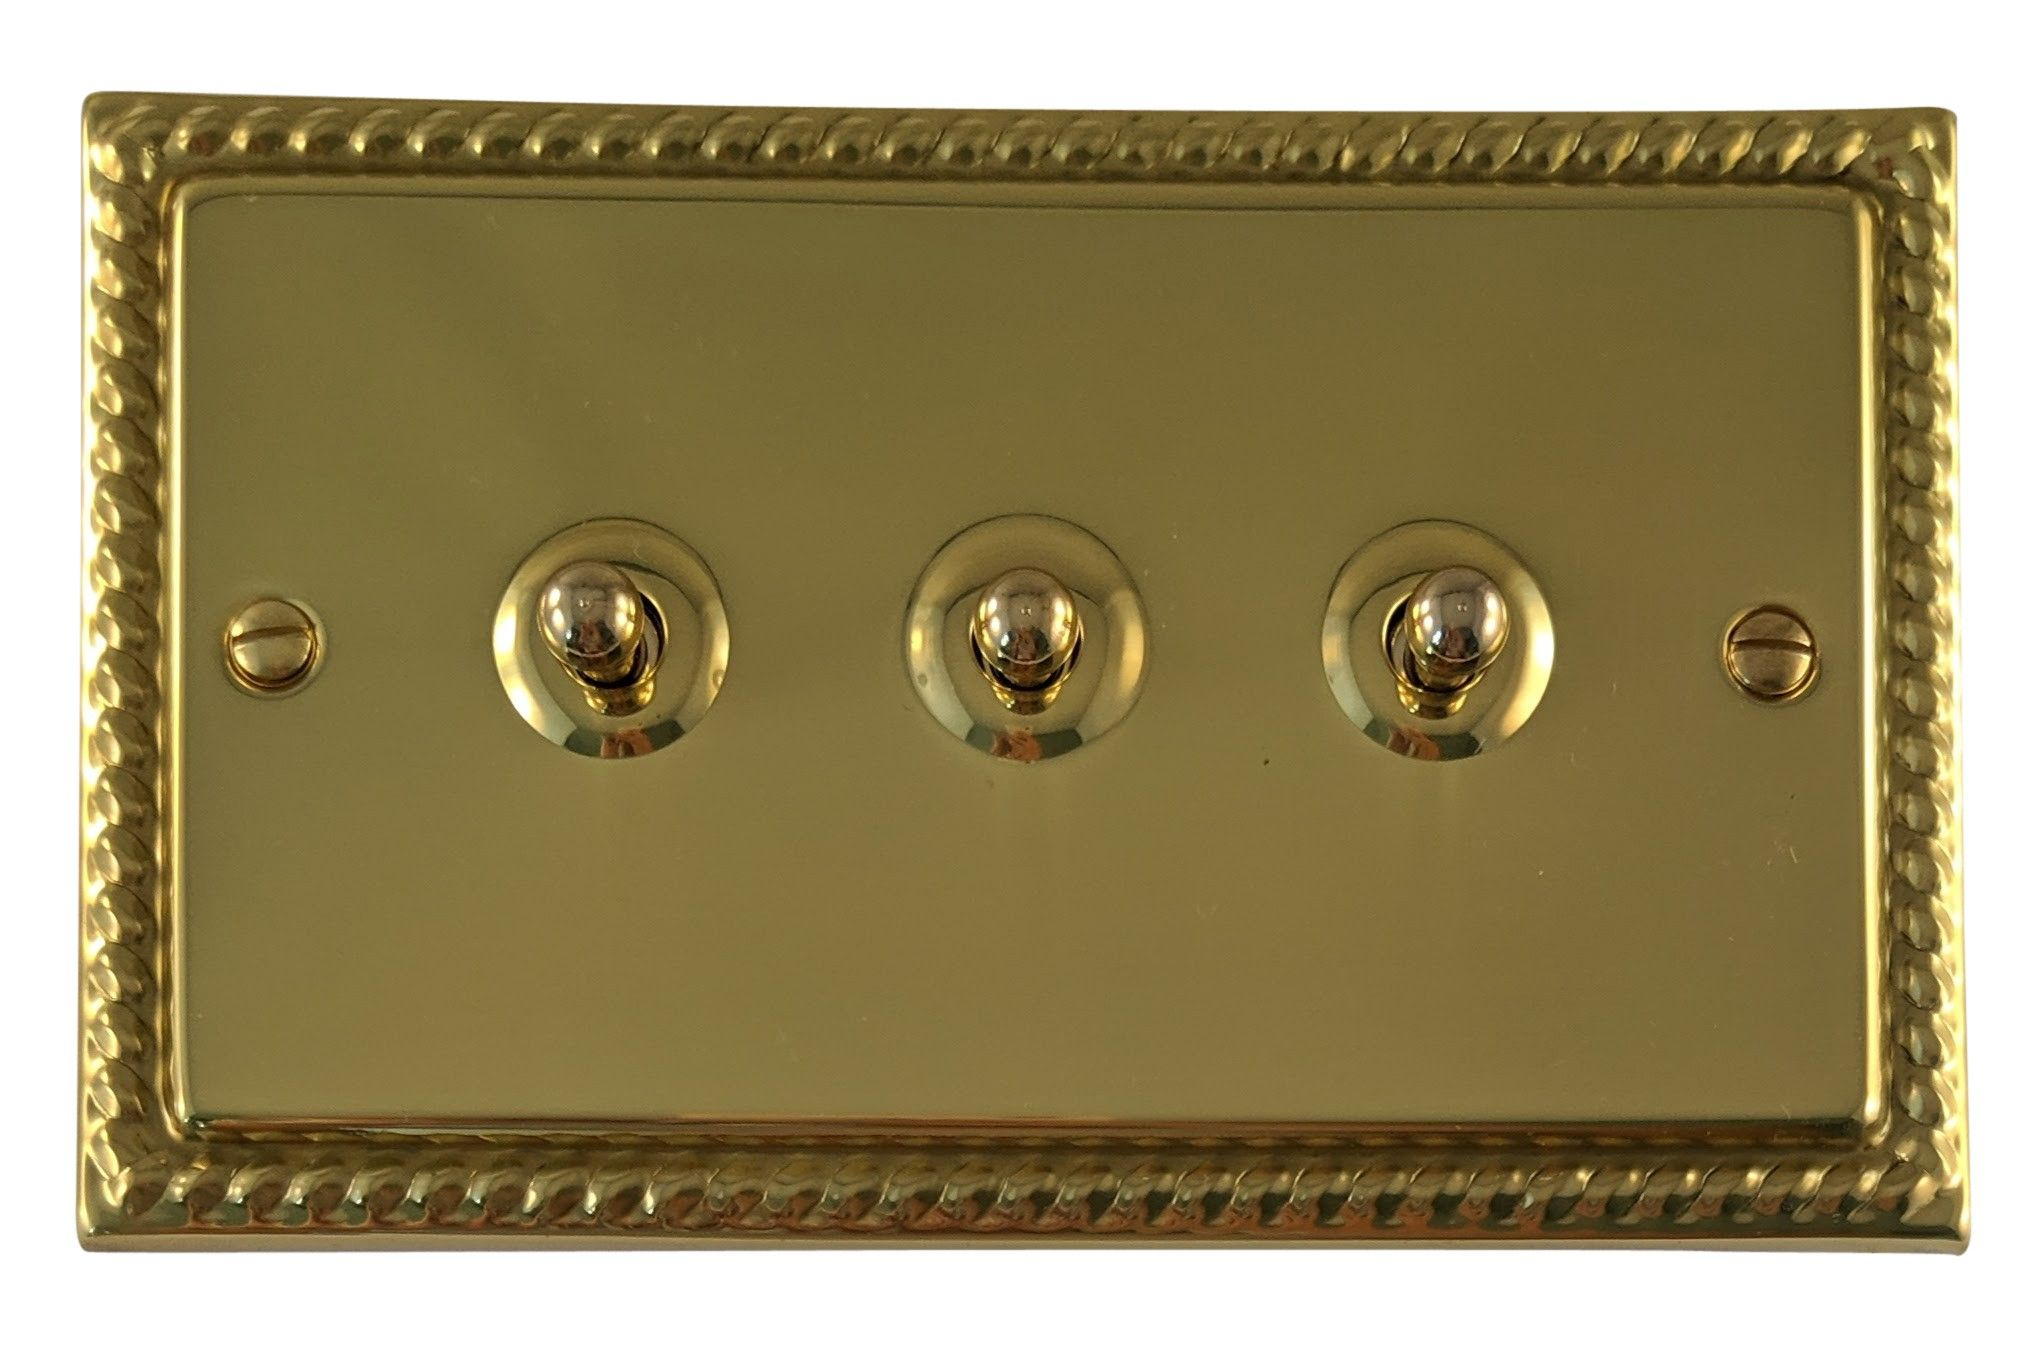 G&H MB283 Monarch Roped Polished Brass 3 Gang 1 or 2 Way Toggle Light Switch